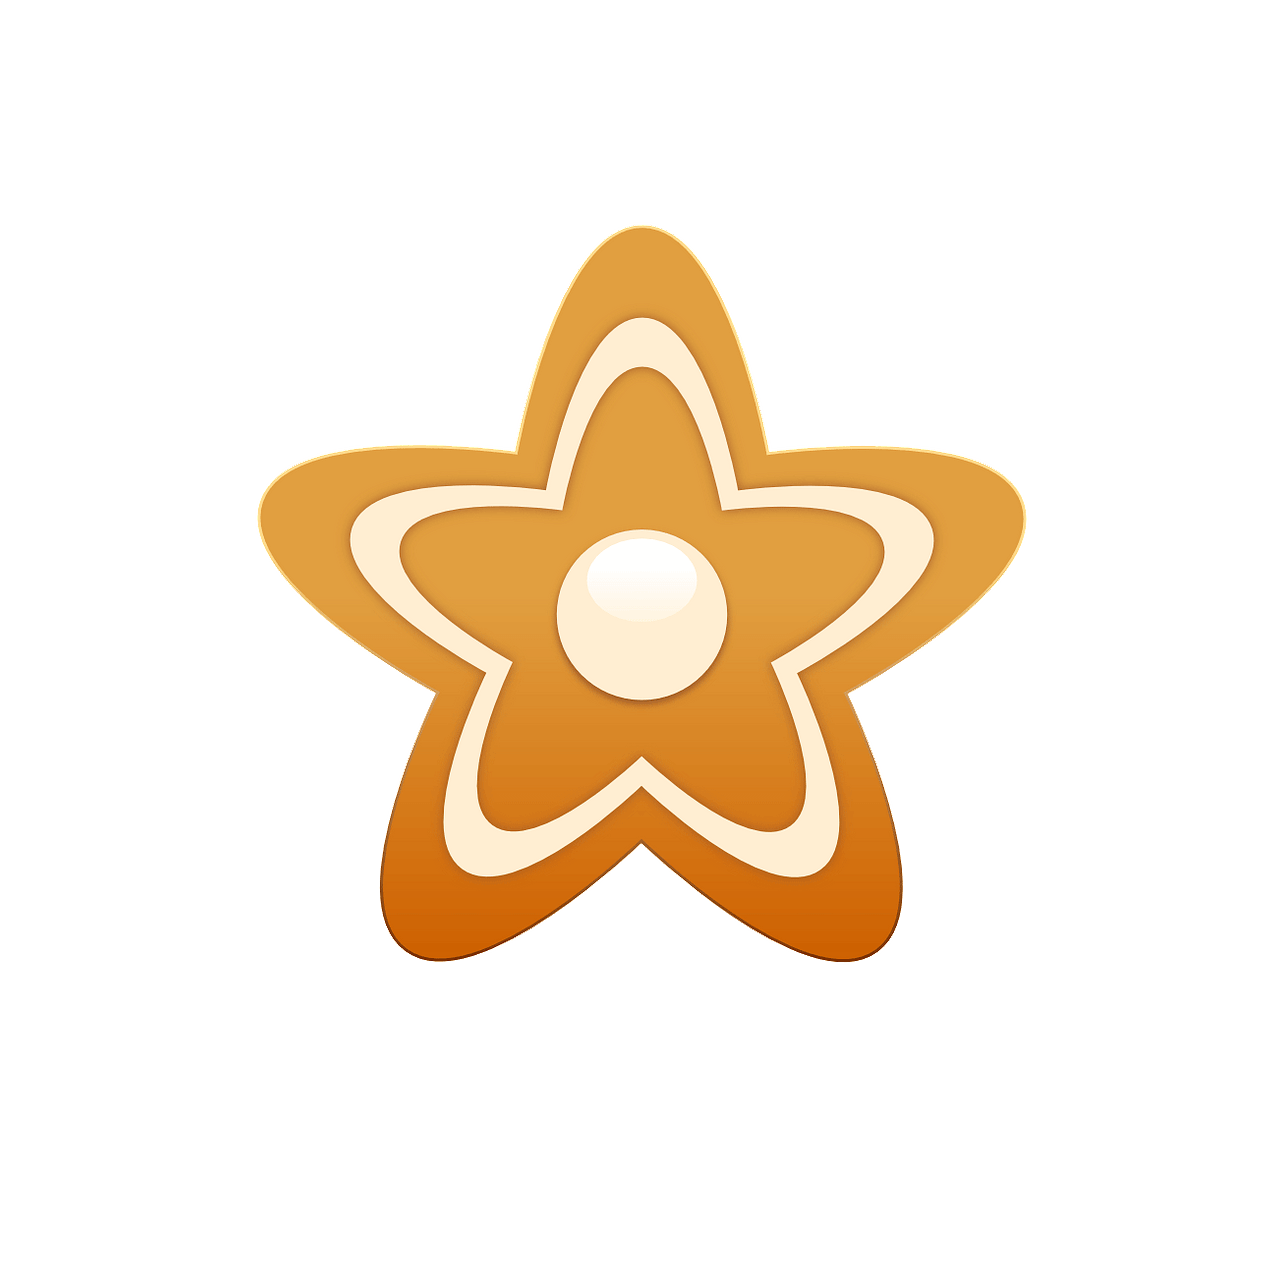 Gingerbread star clipart. Free download..